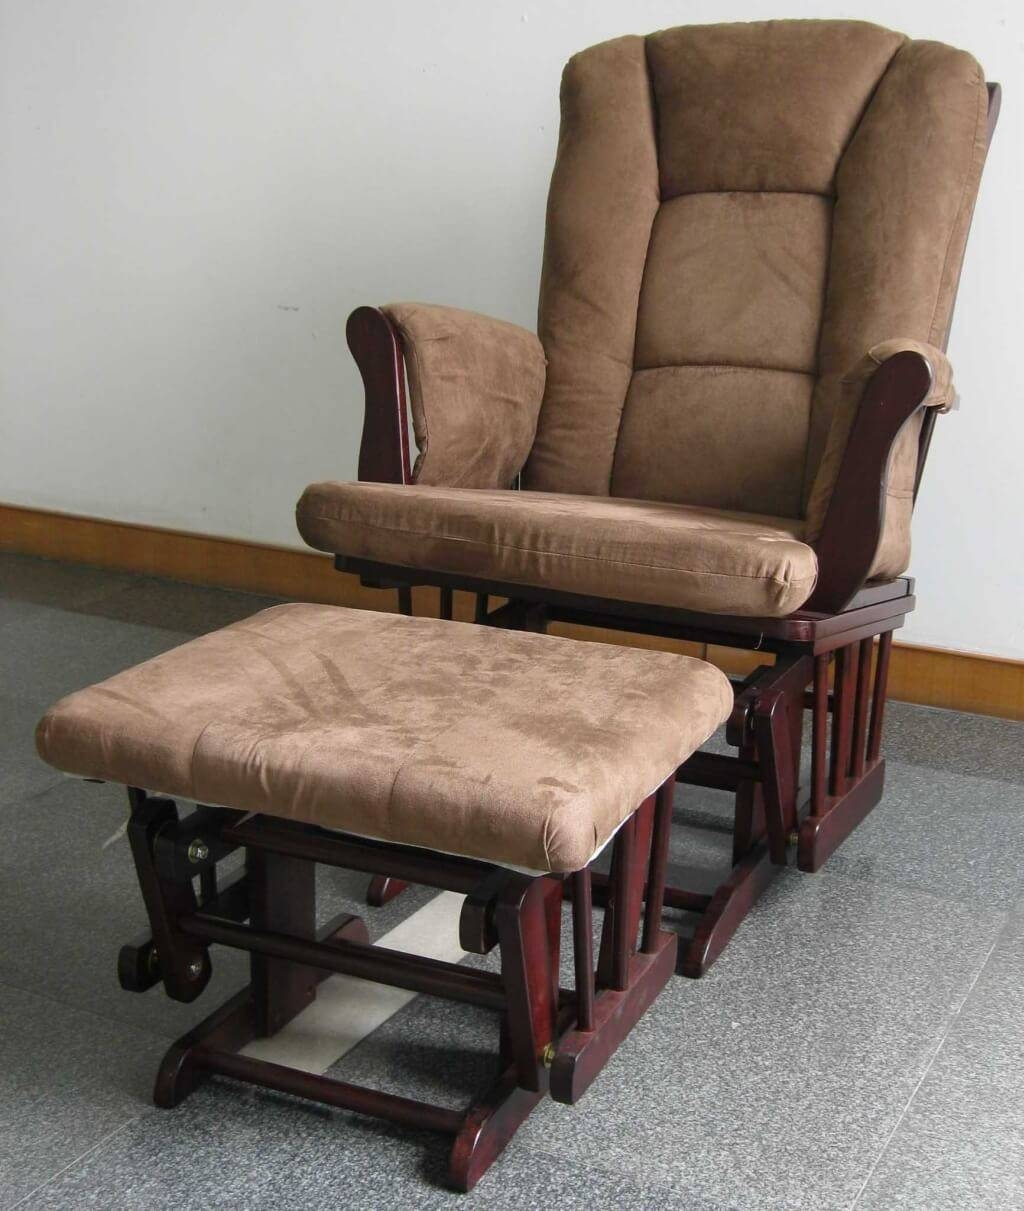 Sofa Brown Rocking Chair For Nursery | Tamingthesat throughout Sofa Rocking Chairs (Image 21 of 30)